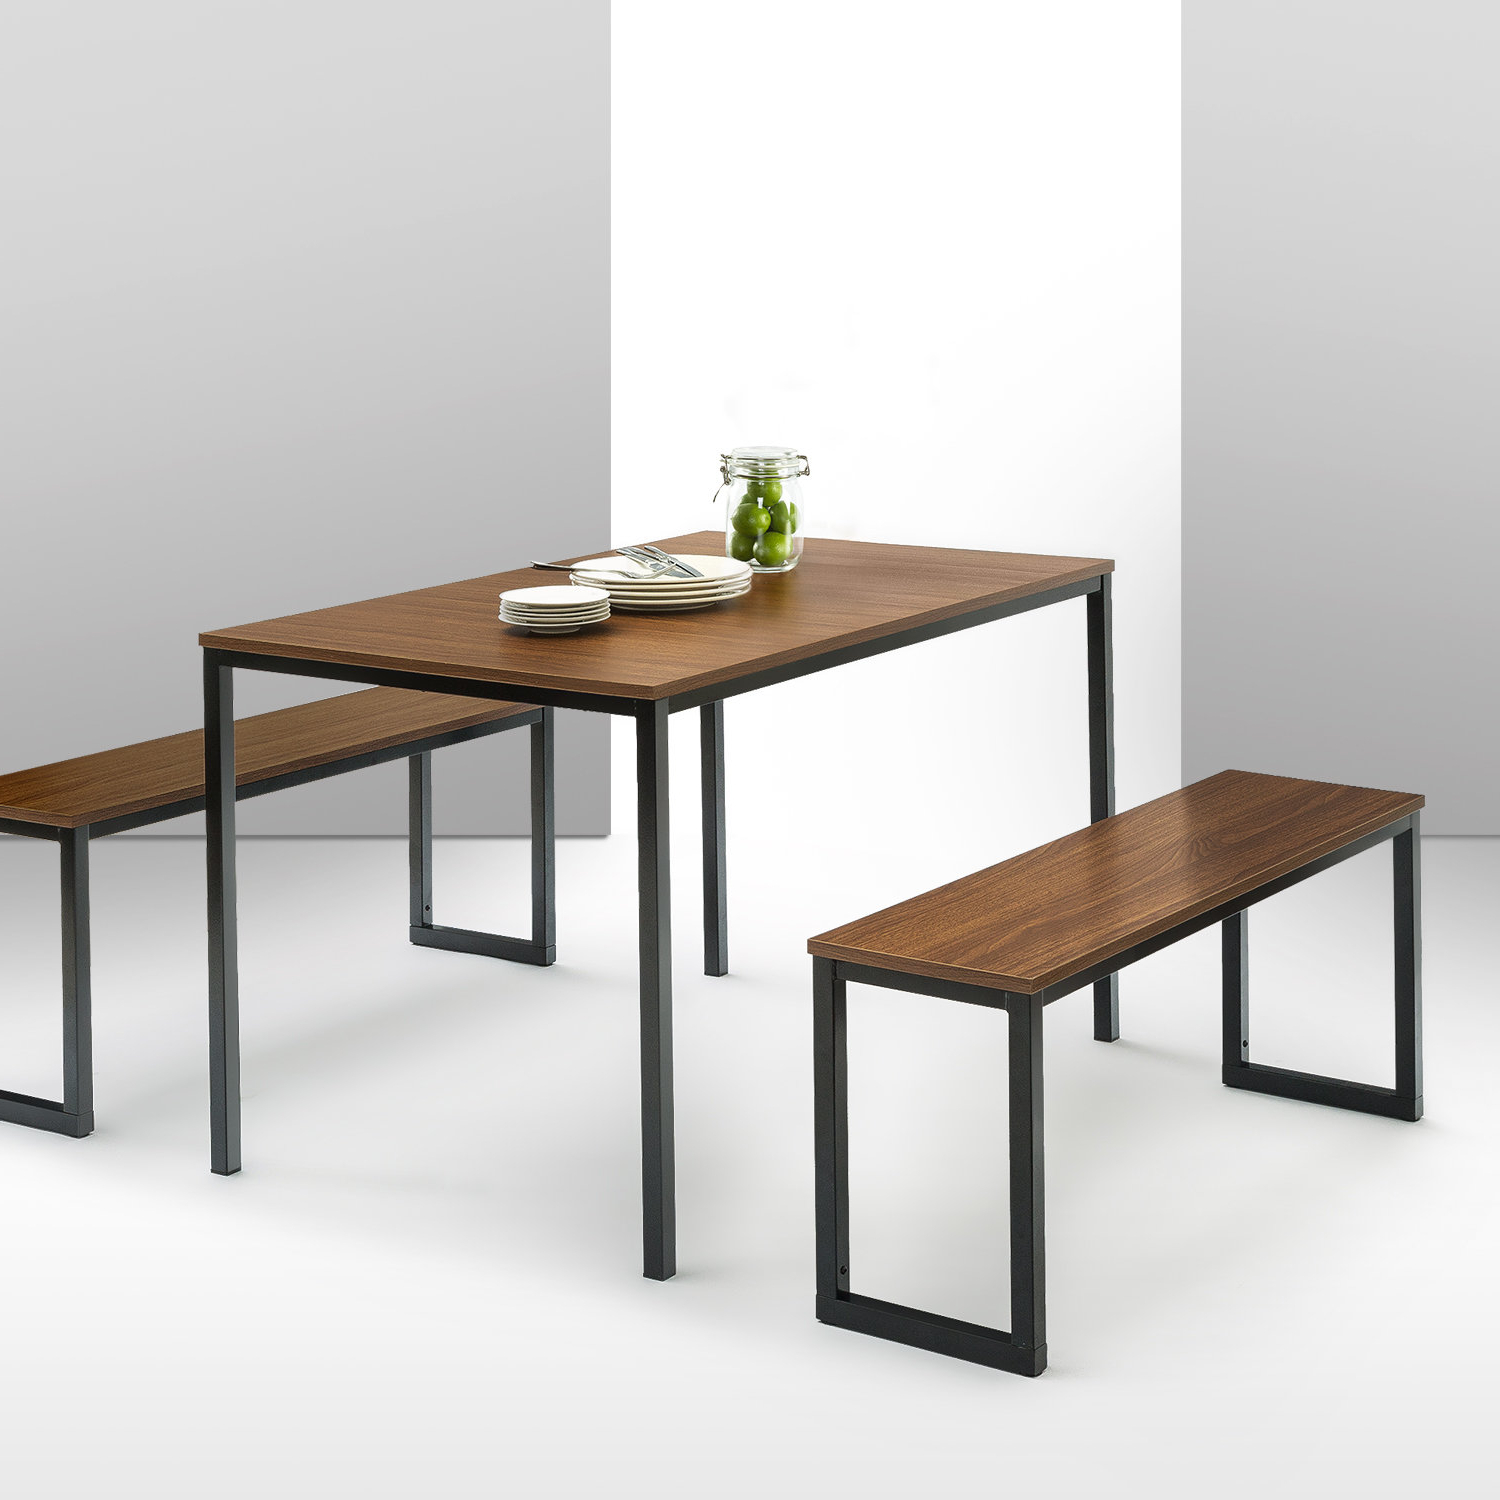 Frida 3 Piece Dining Table Set For Latest Debby Small Space 3 Piece Dining Sets (View 13 of 25)